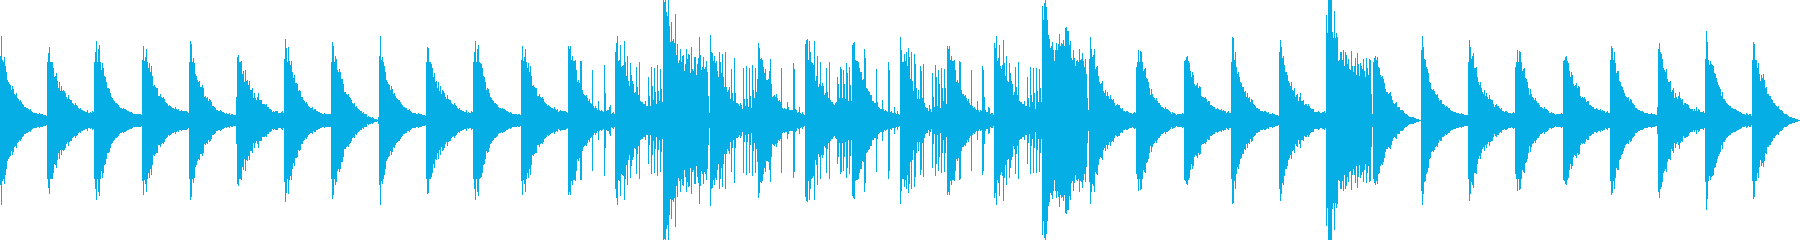 Piano chord BGM's reproduced waveform